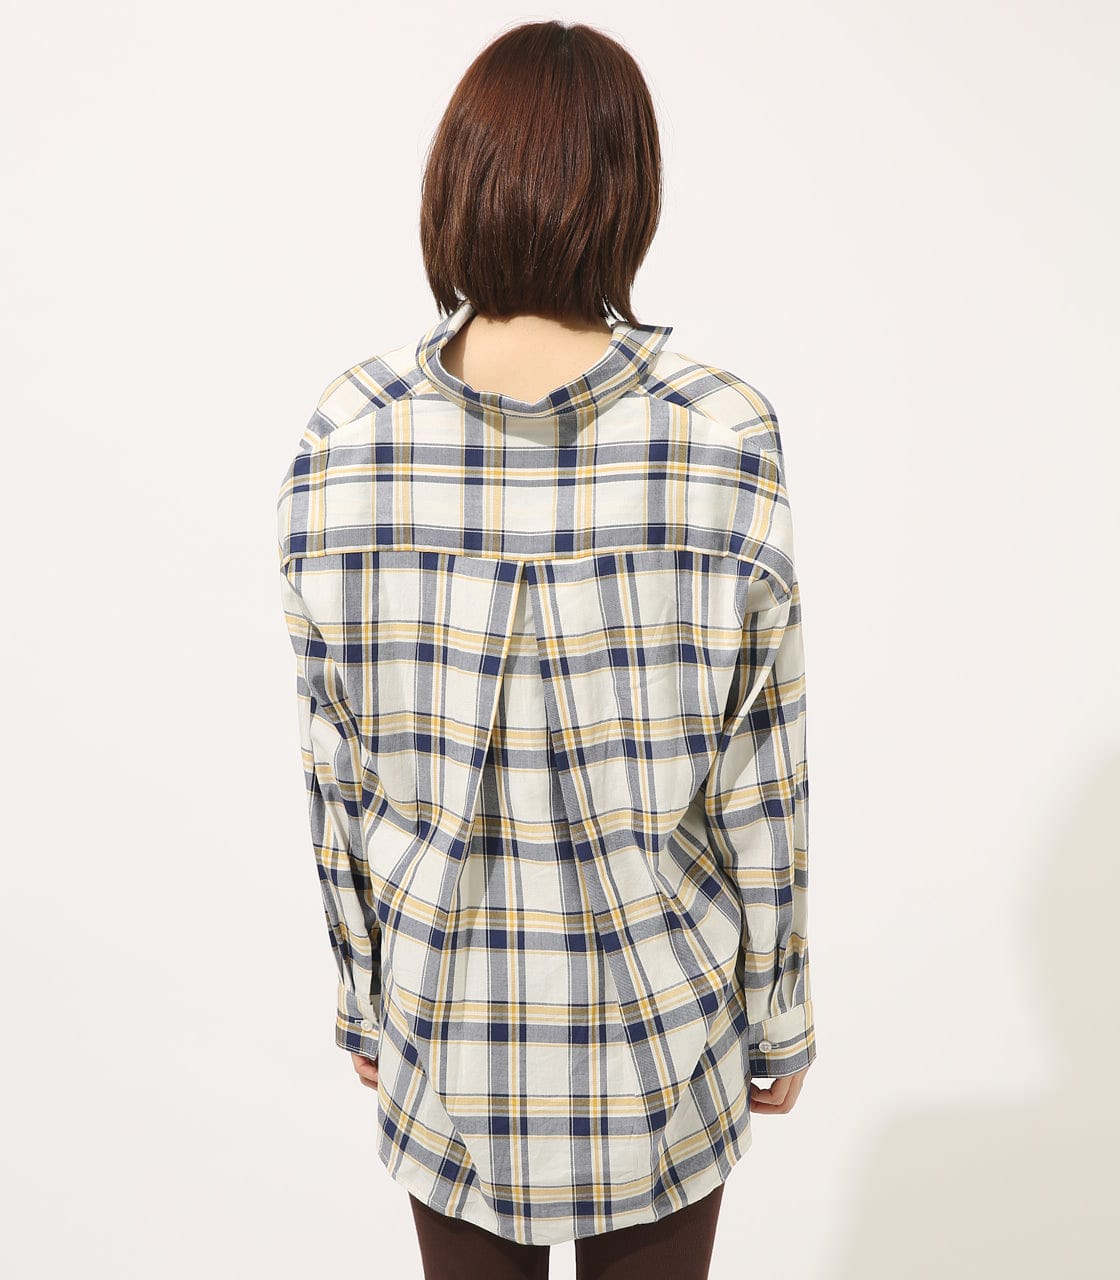 【AZUL BY MOUSSY】MADRAS CHECK SHIRT【MOOK50掲載 90135】 詳細画像 柄WHT 6